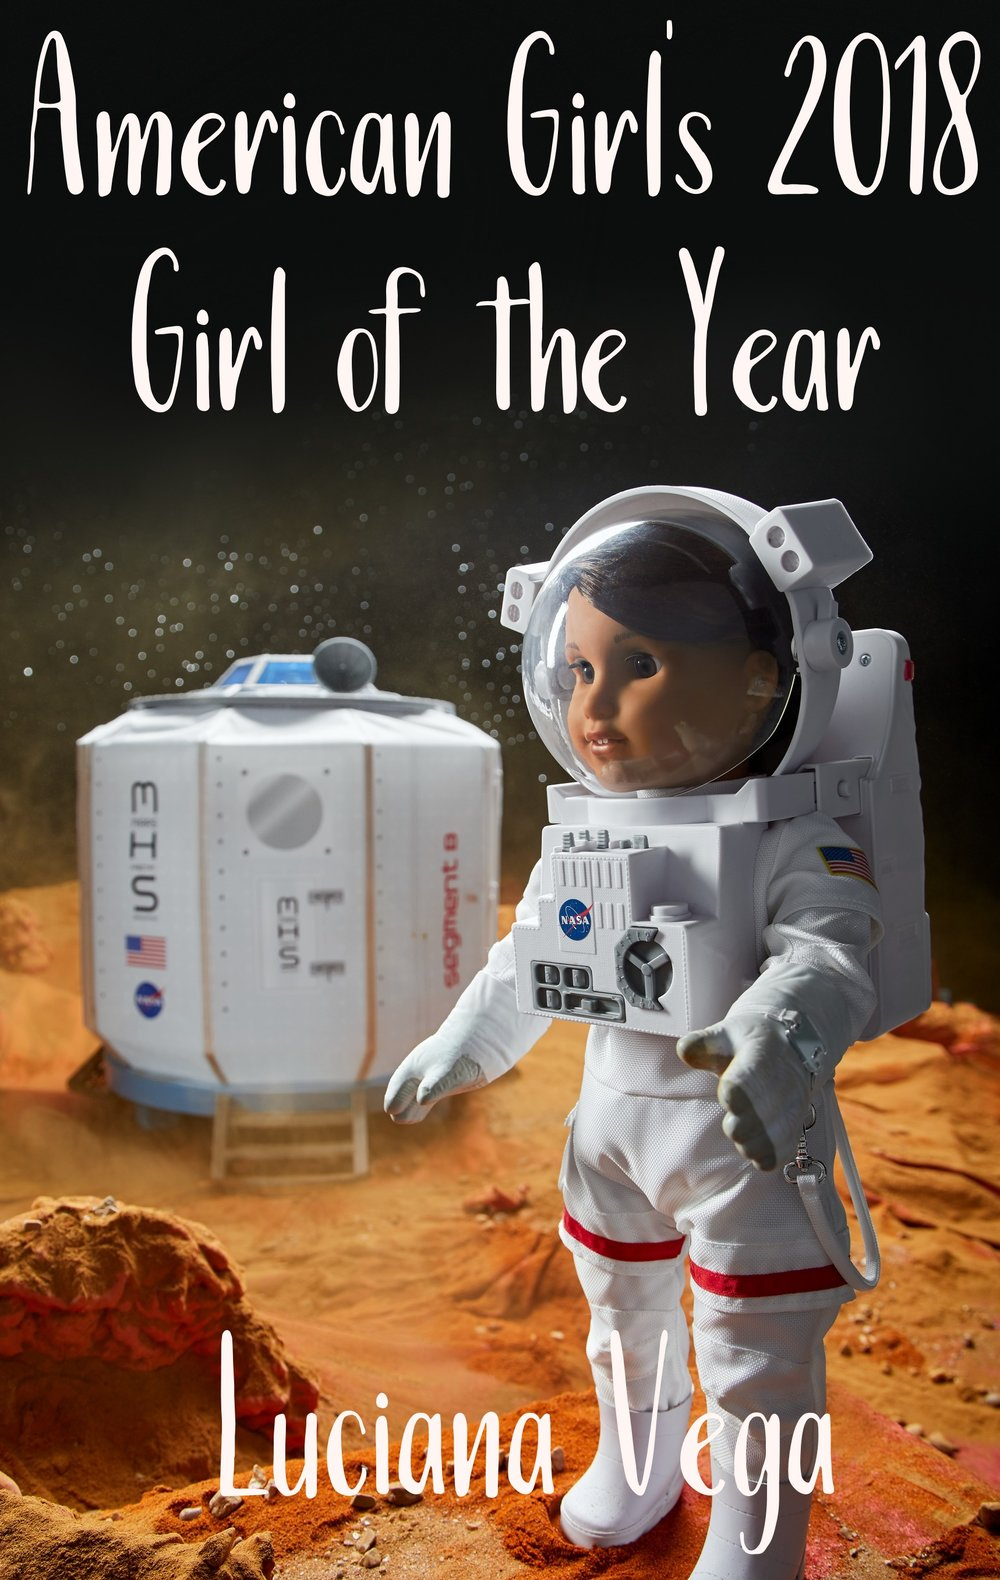 American+Girl%27s+2018+Girl+of+the+Year+Is+Luciana+Vega+-+Aspiring+Astronaut